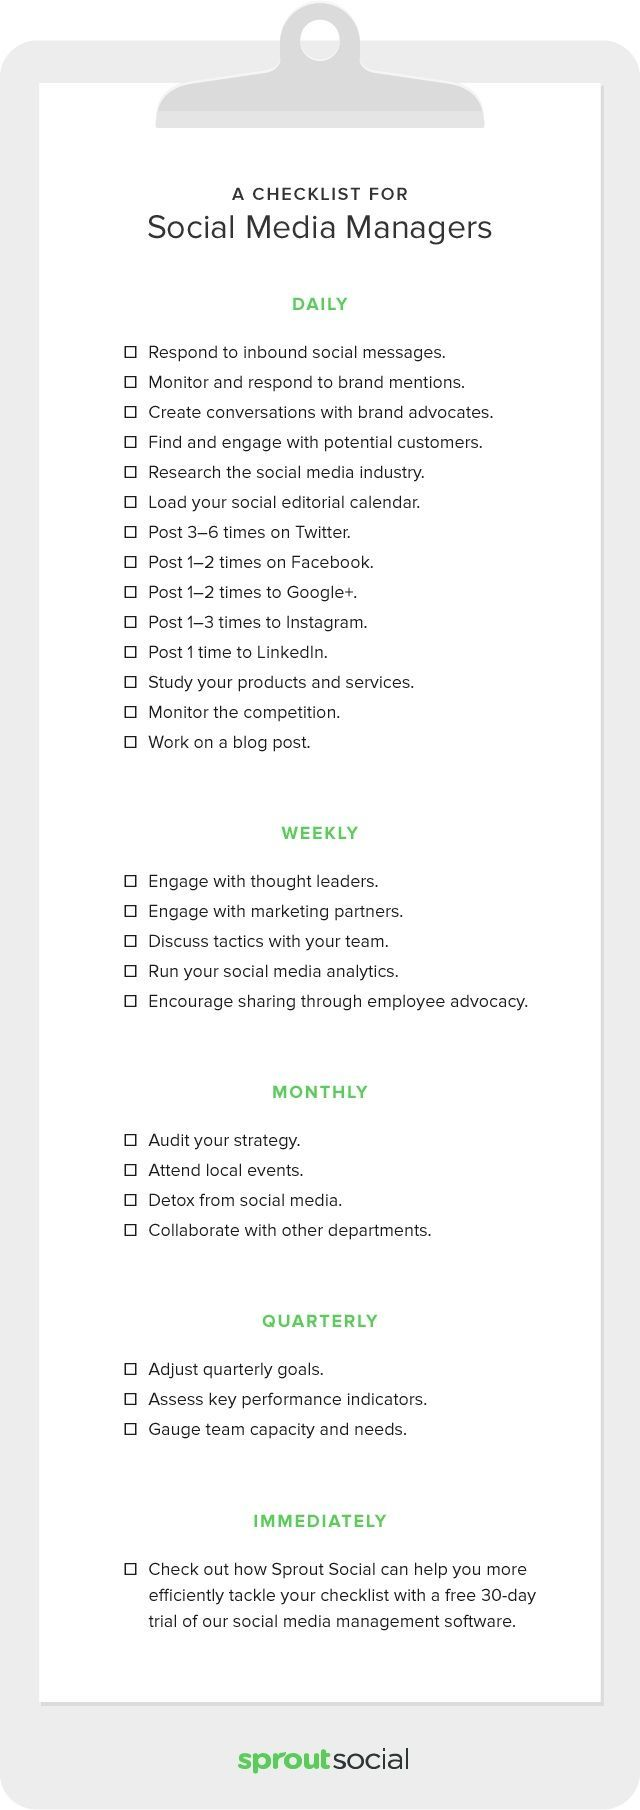 A complete list of social media tasks and projects, placed onto downloadable checklists!